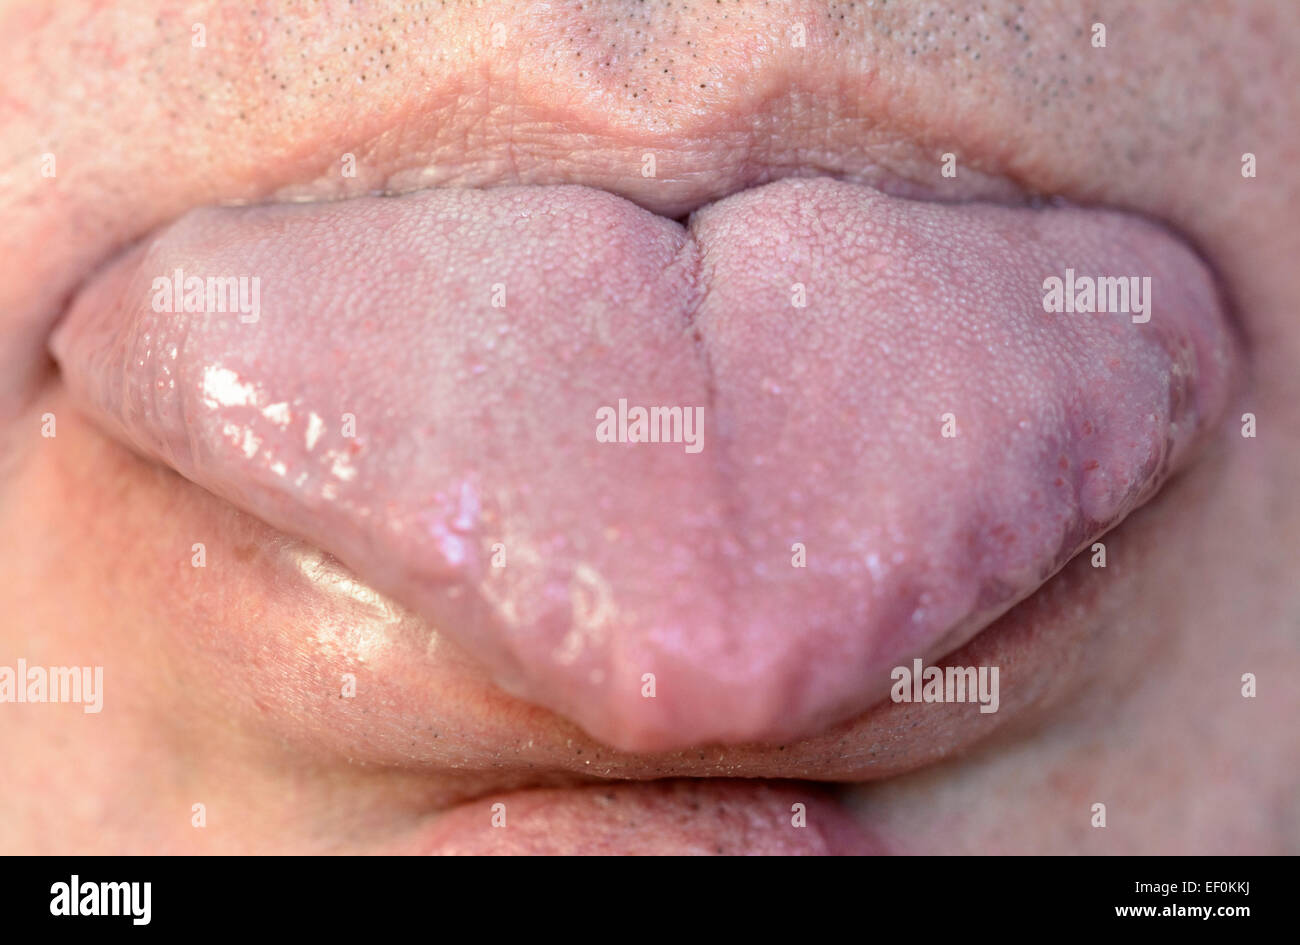 tongue-sticking-out-front-view-of-a-caucasian-male-with-his-tongue-EF0KKJ.jpg